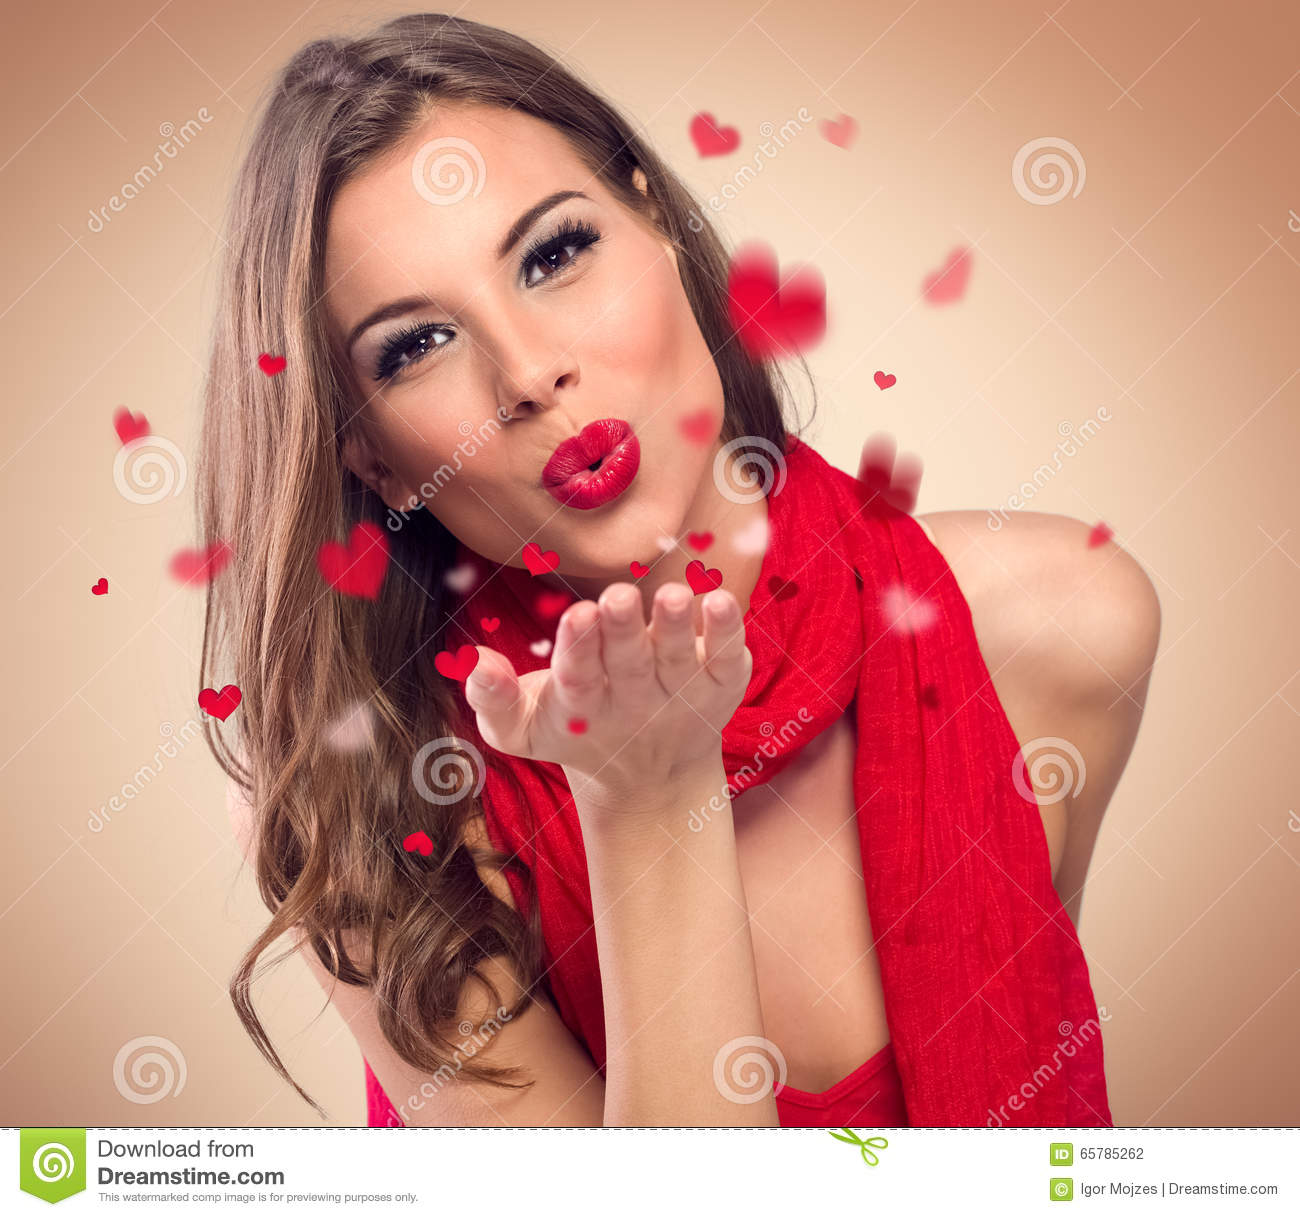 Cute Couple Kisses Wallpaper Woman To Blow Kisses Stock Photo Image 65785262